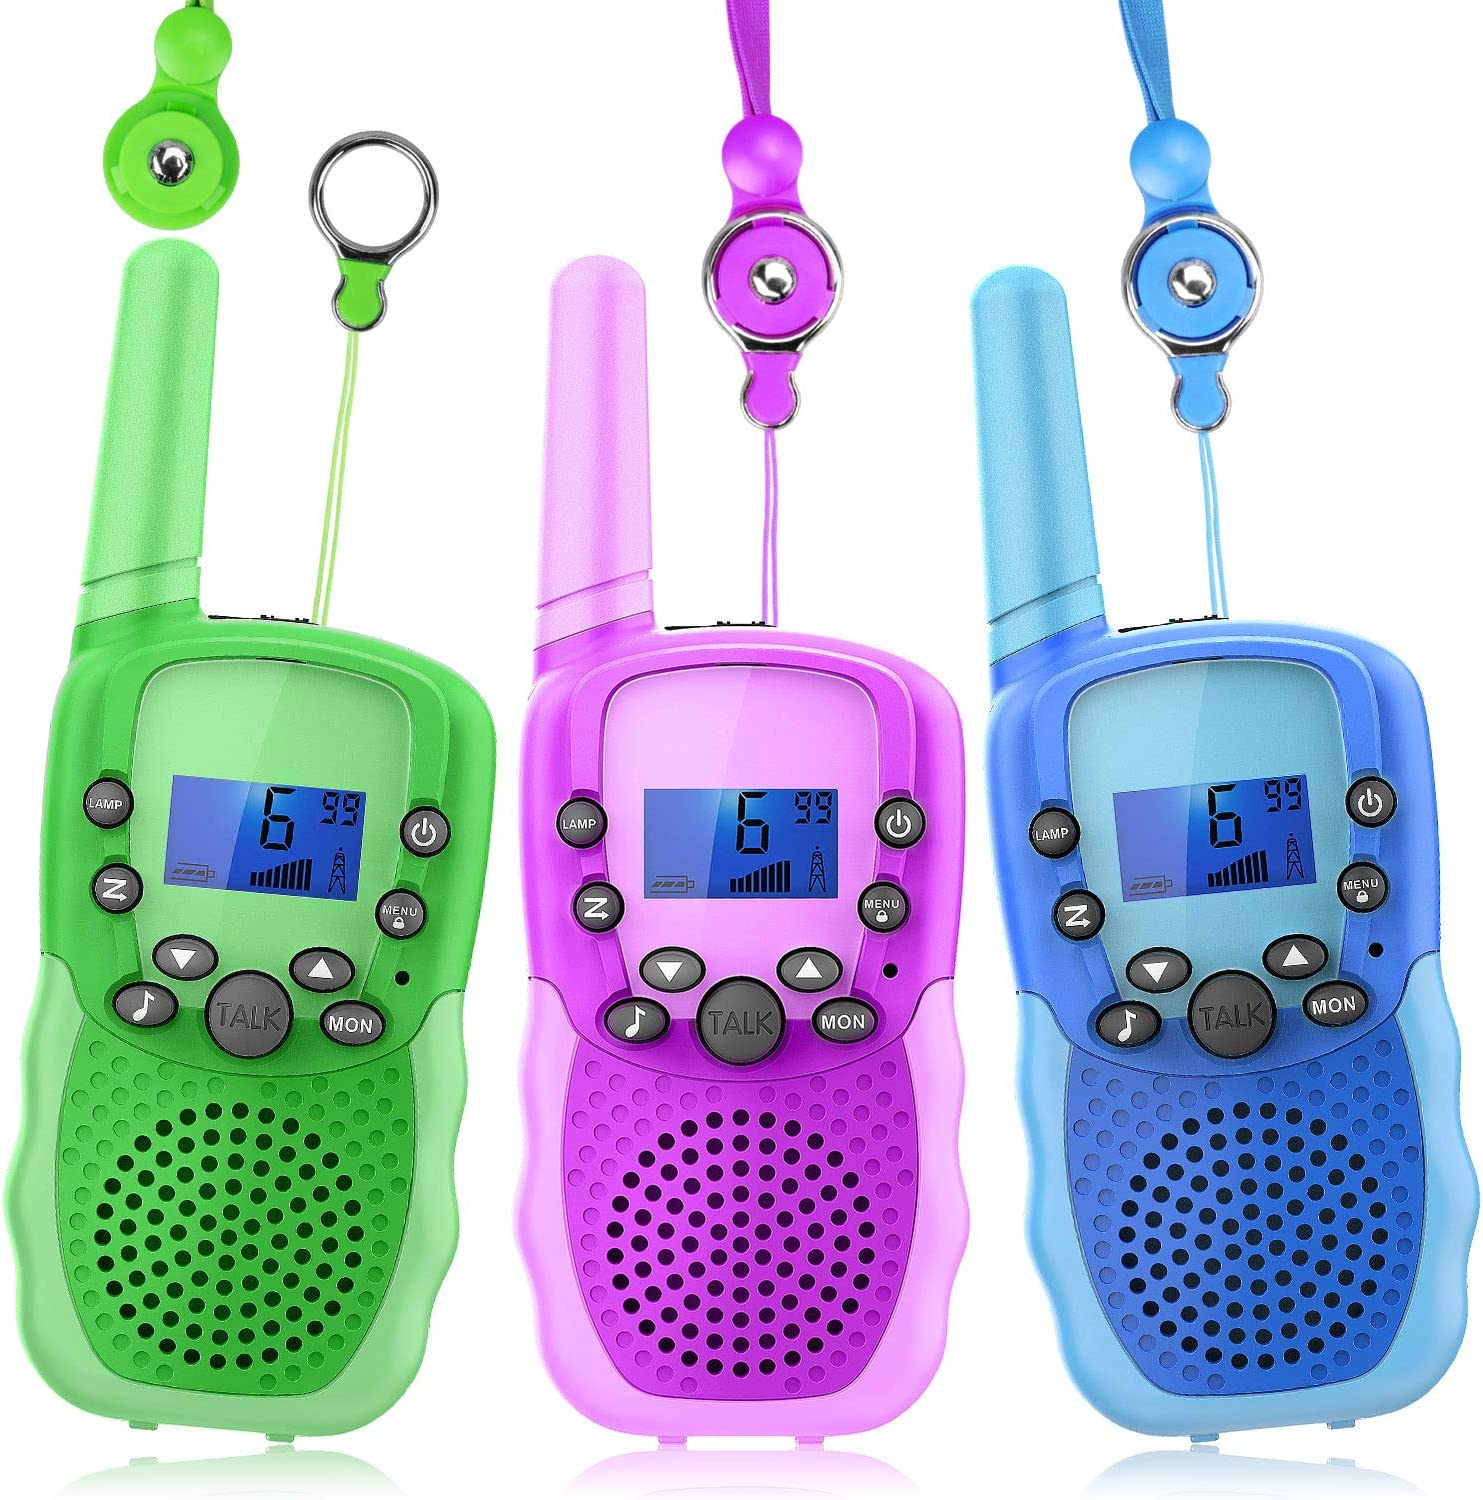 Wishouse Wearable Walkie Talkies 3 Pack for Kids Boy Girl,Two Way Radio Long Range with Detachable Lanyard Flashlight,Outdoor Camping Games Halloween Cosplay Toy Xmas Birthday Gift for Children